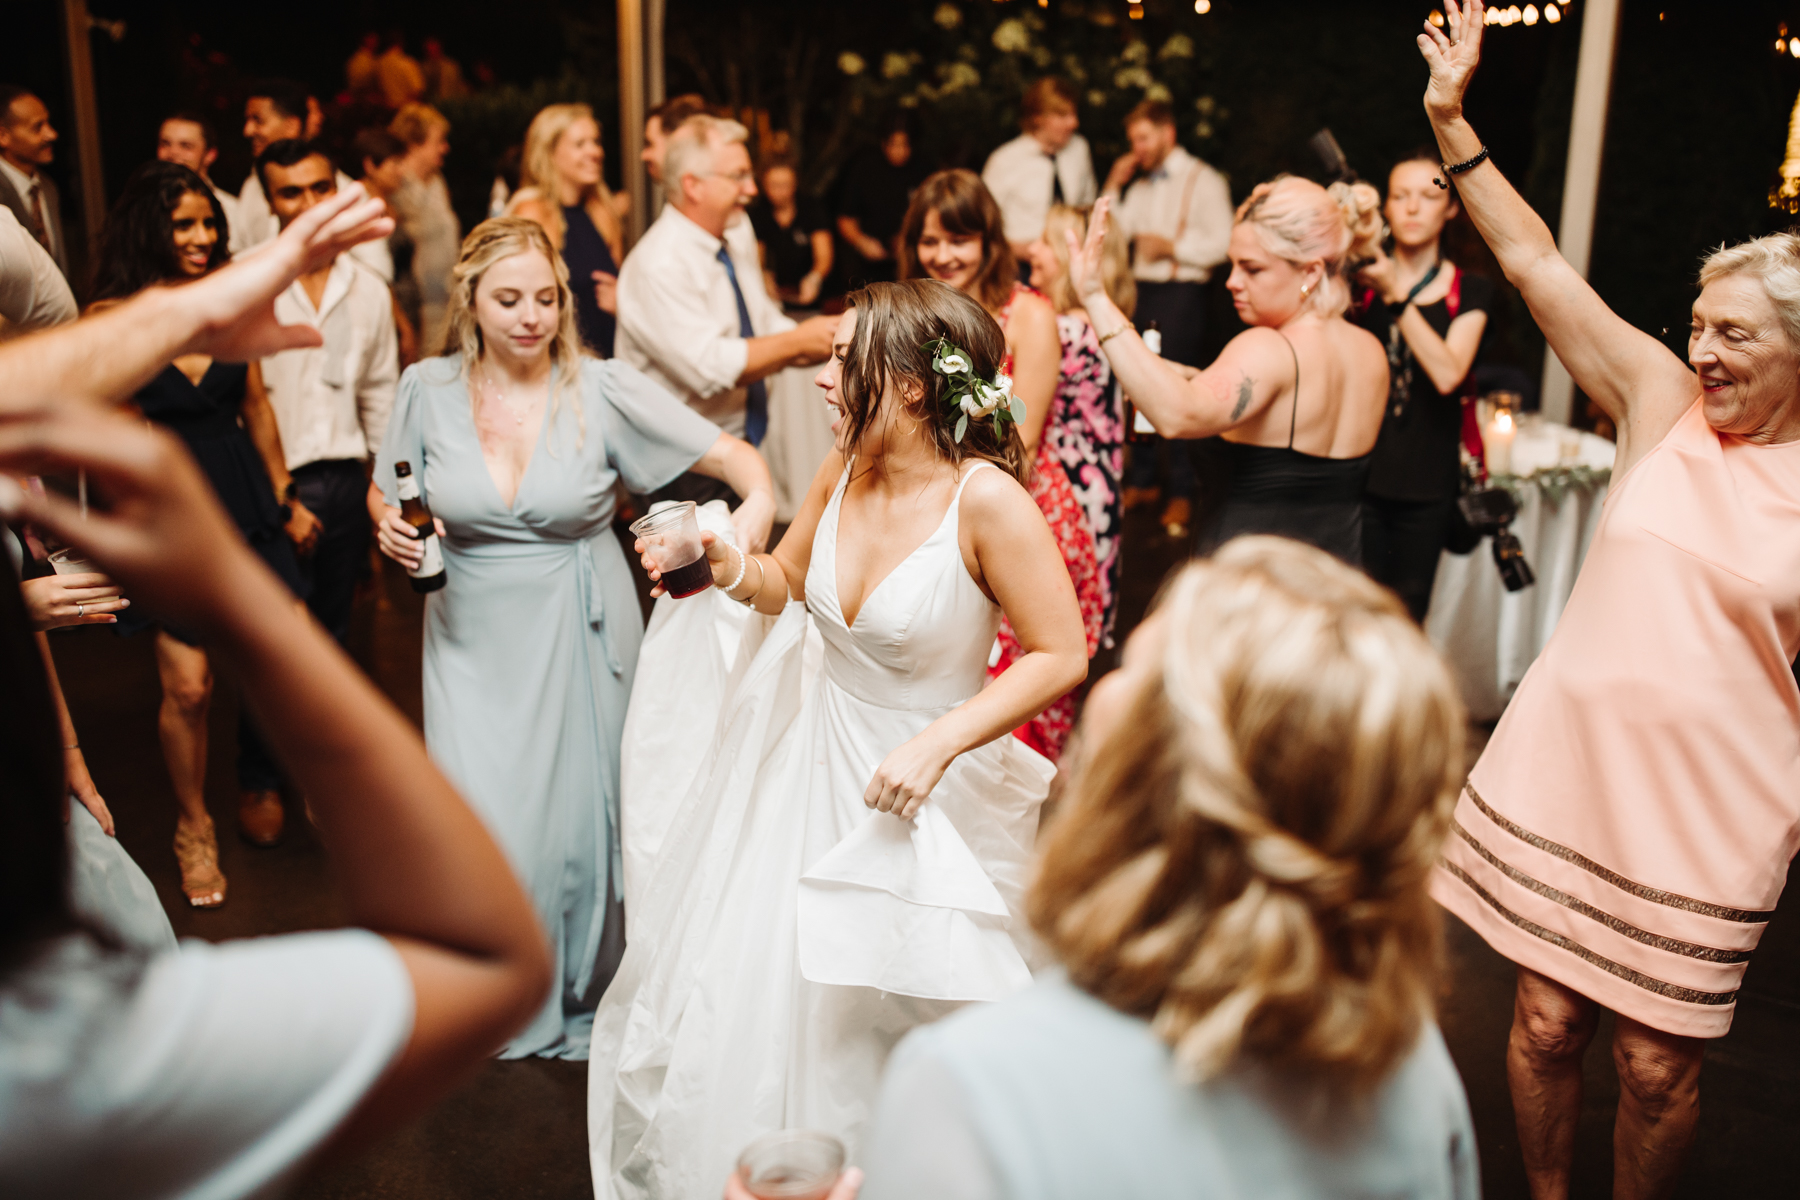 bride on the dance floor at a reception of a Sunny summer wedding at Dara's Garden in Knoxville, Tennessee